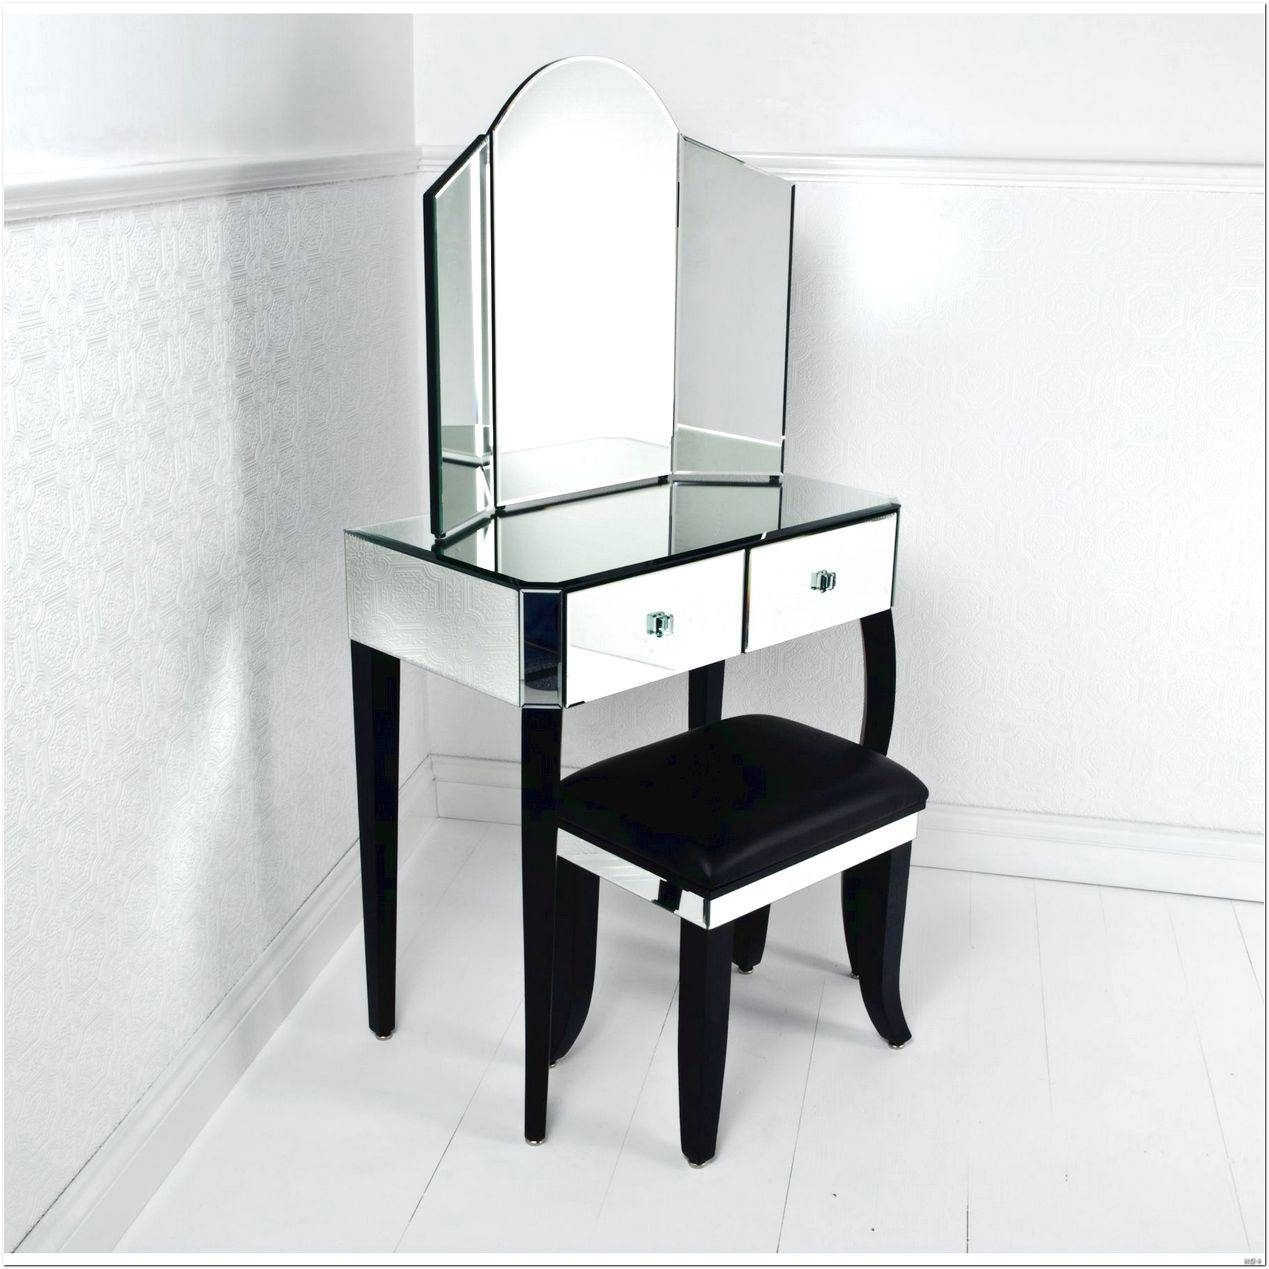 Contemporary Dressing Table Mirrors Design Ideas – Interior Design For Contemporary Dressing Table Mirrors (View 10 of 25)